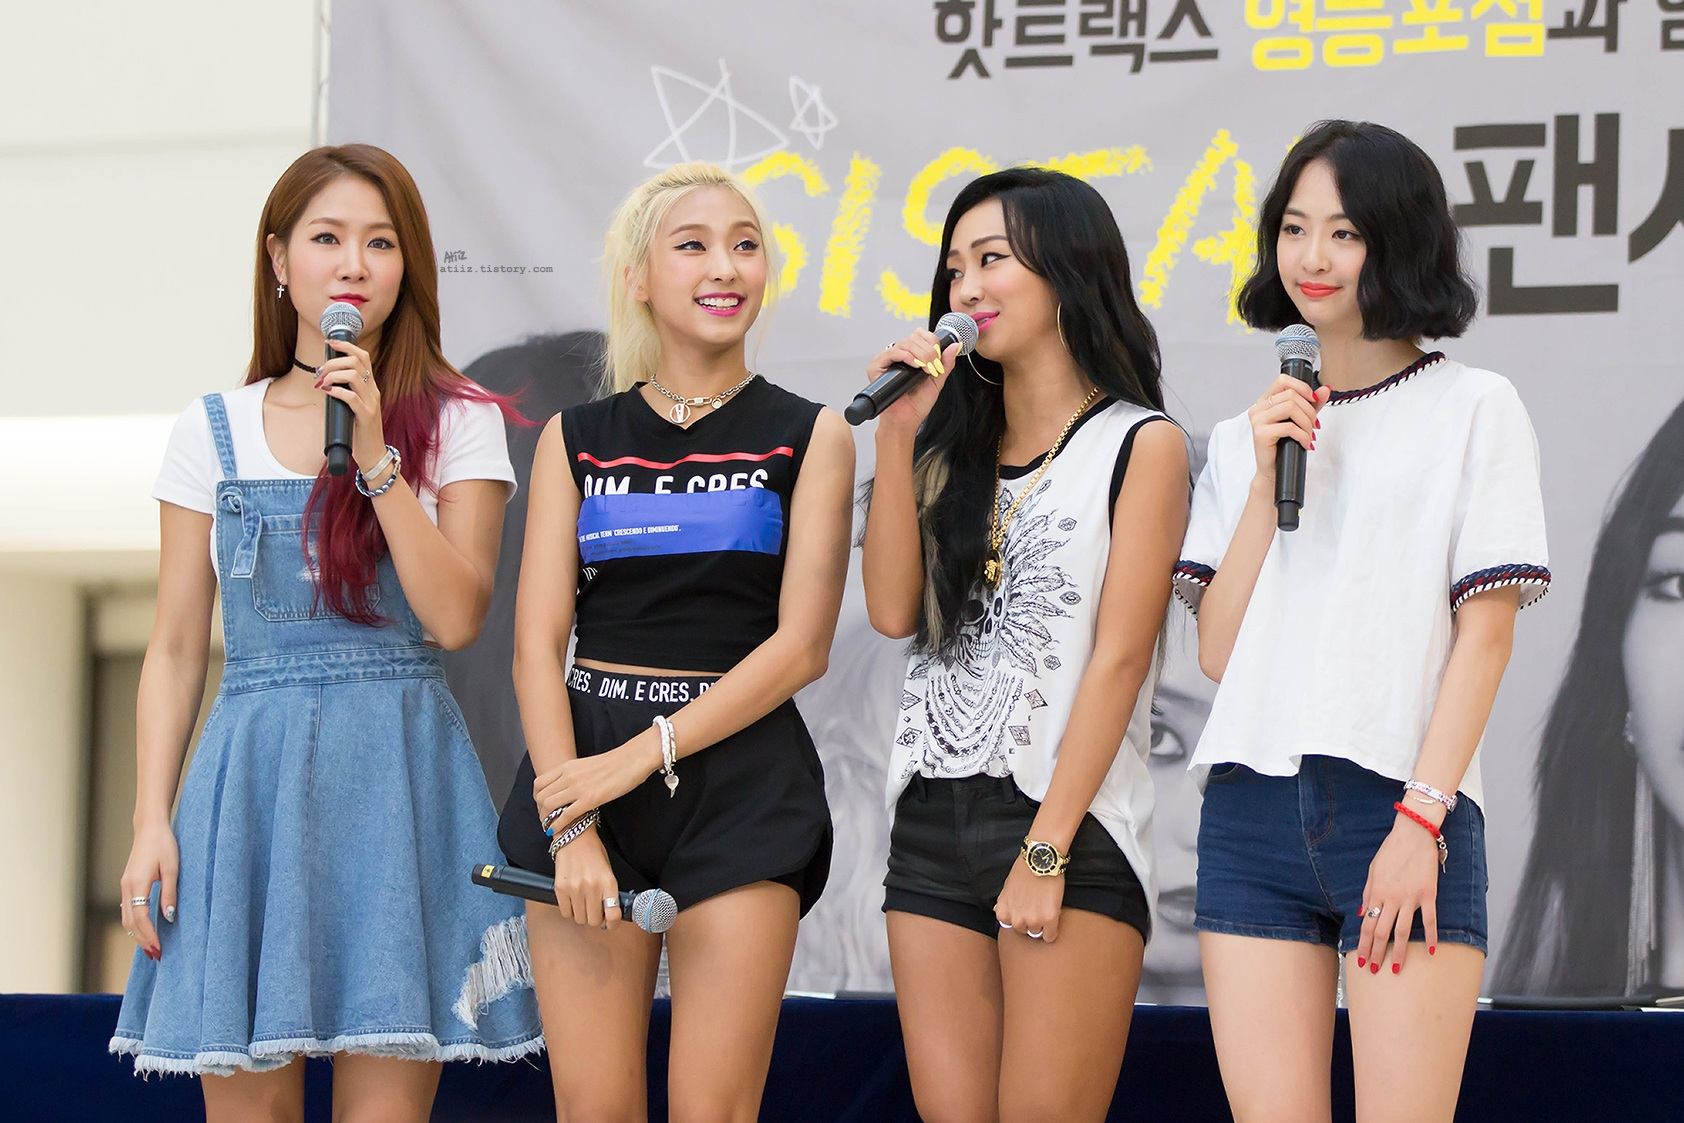 Handwritten letters from SISTAR explain why they chose to disband